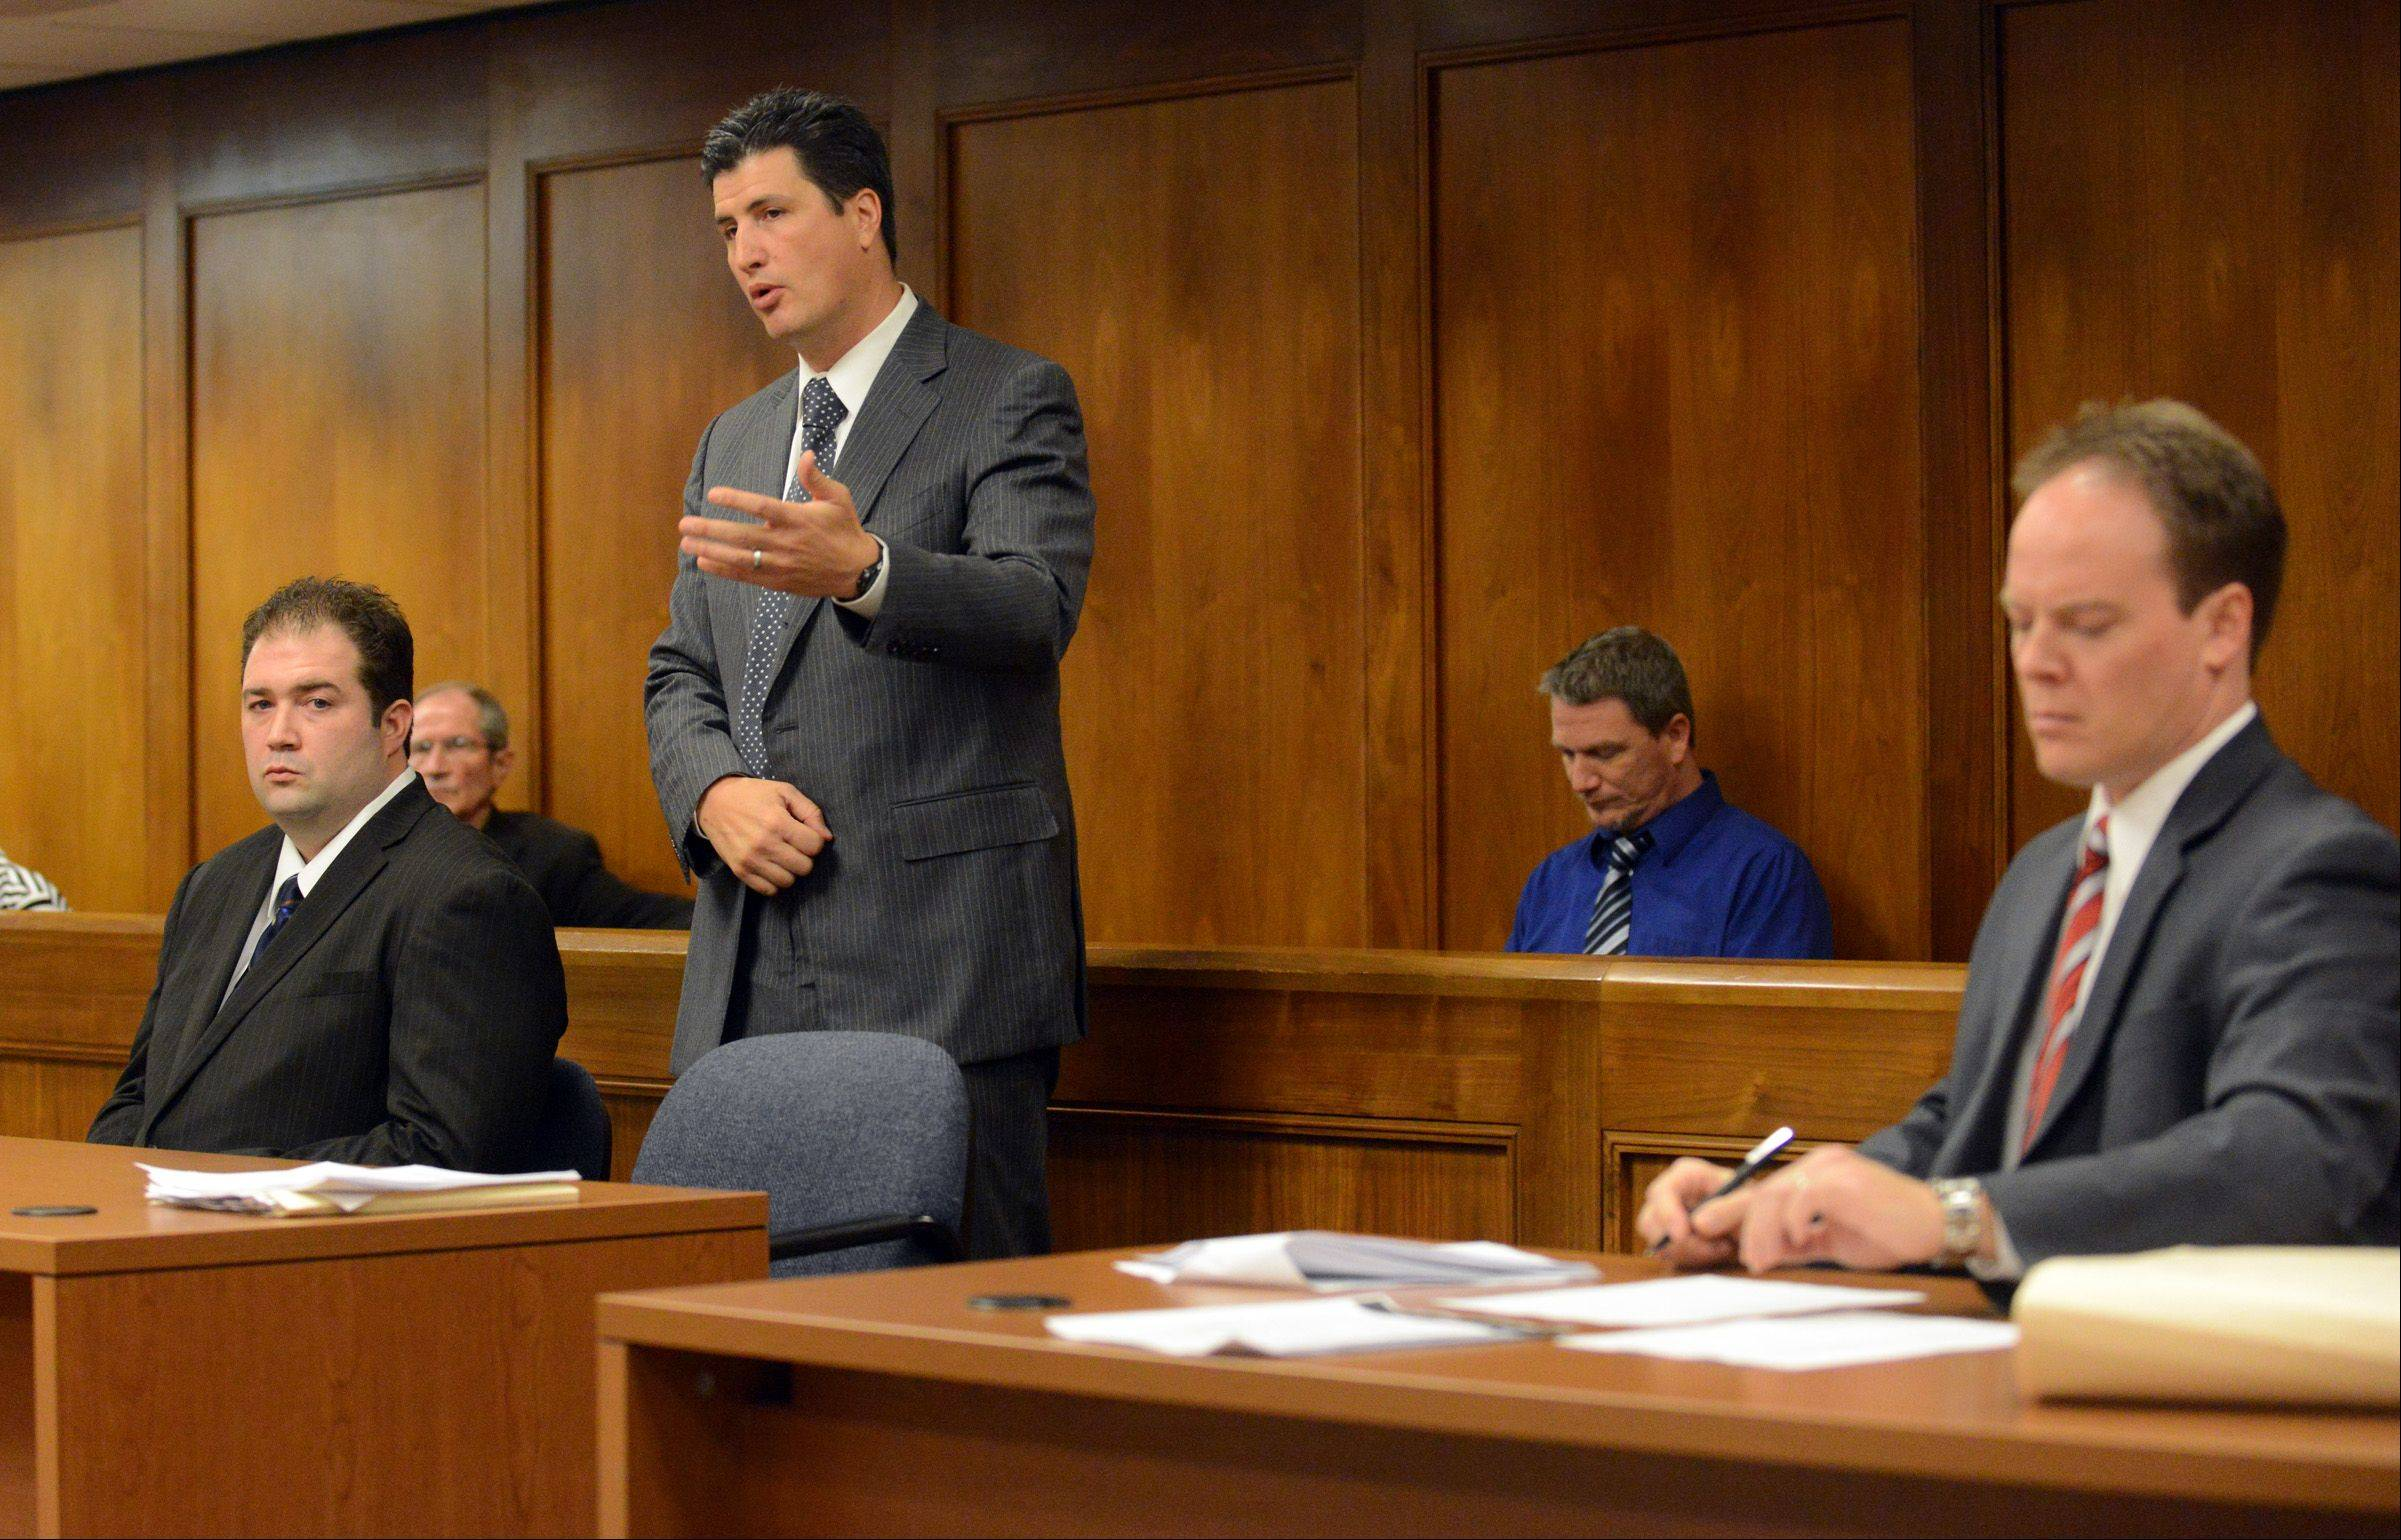 Matthew Padour, left, 31, of Libertyville listens to his attorney, Frank Himel, speak in his defense as assistant state's attorney Jim Newman takes notes during a sentencing hearing at the Lake County Courthouse for attacking a Metra conductor in April 2012.